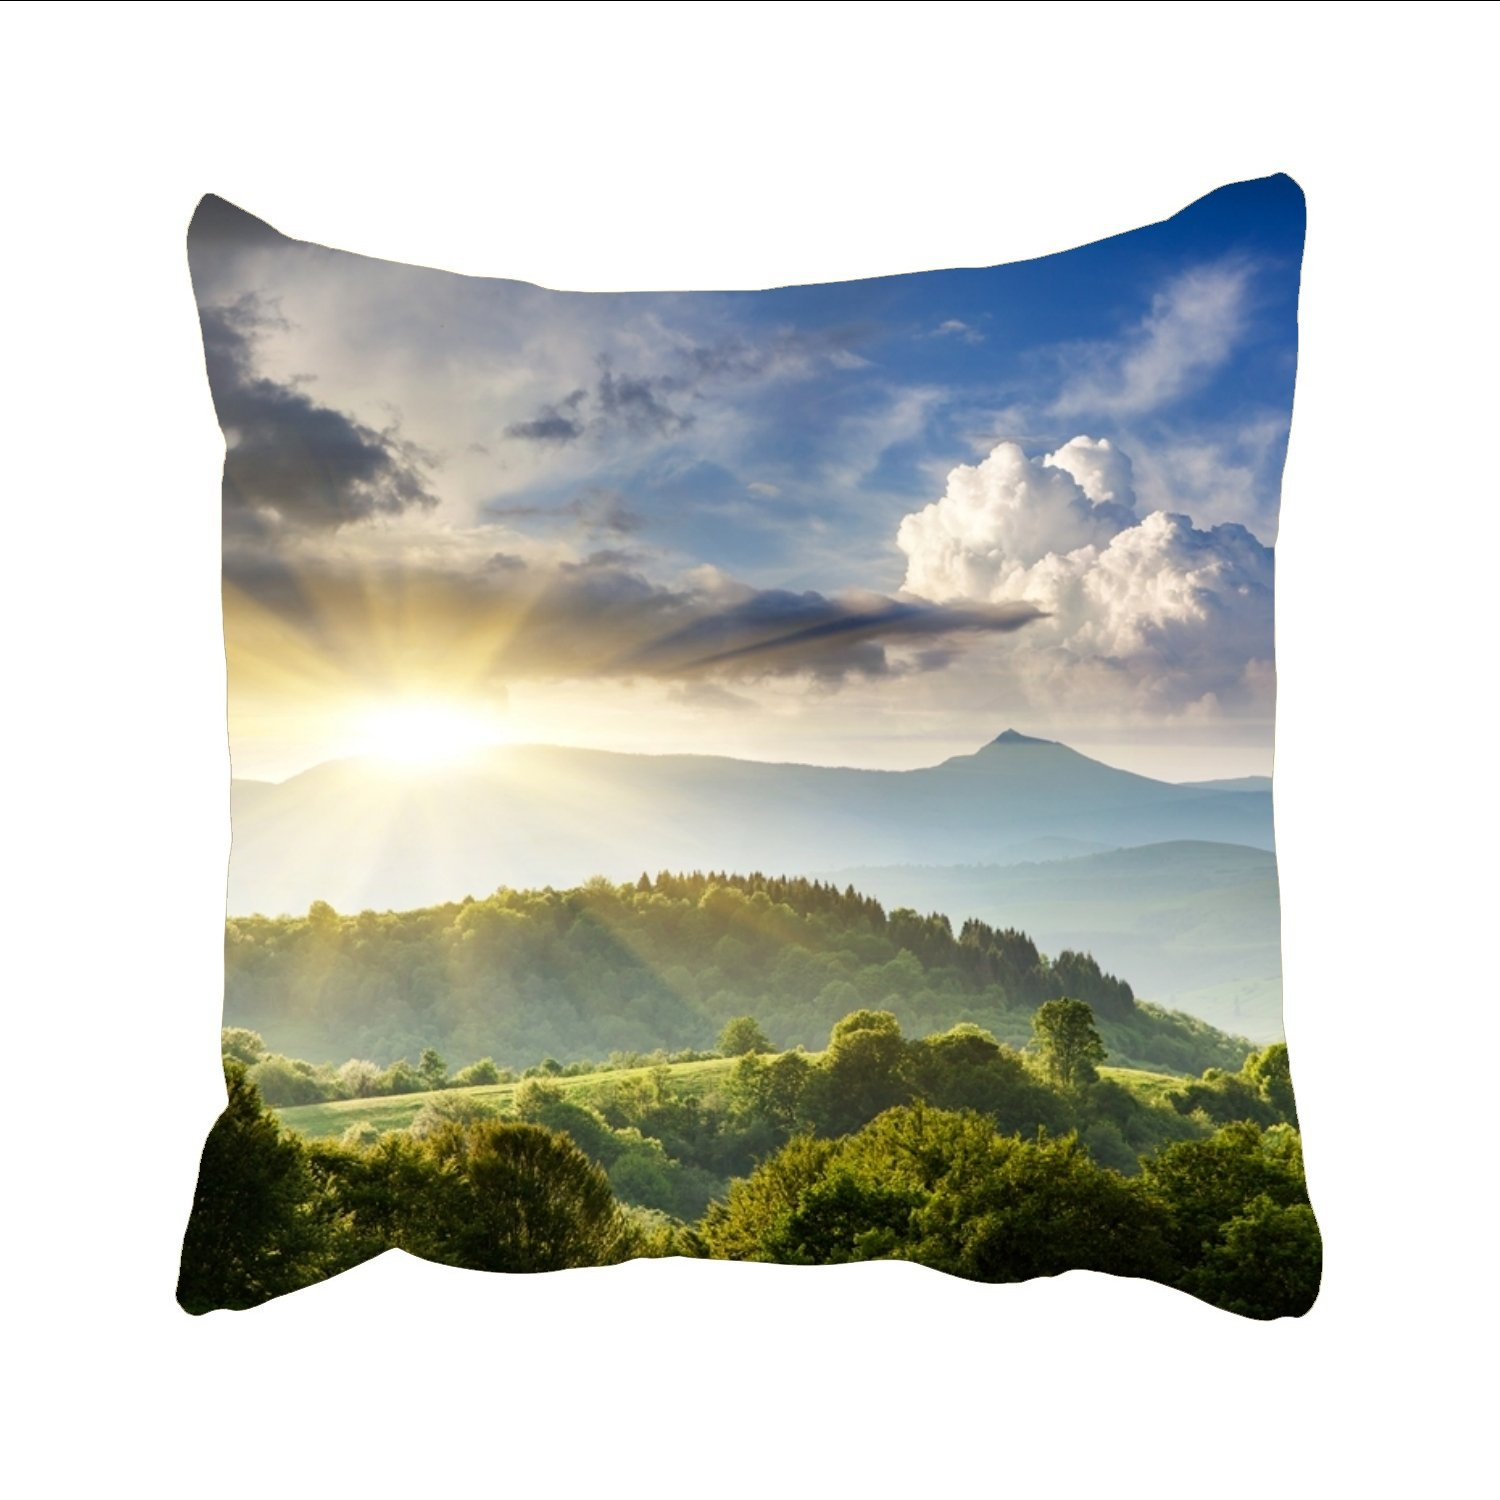 julefan Gentle犬Throw Pillow Cases Personalized装飾亜麻クッションカバー車ソファホーム 18 x 18 inches P2e_1334615-108 18 x 18 inches Beauty Mountain2 B07FCGTMN5